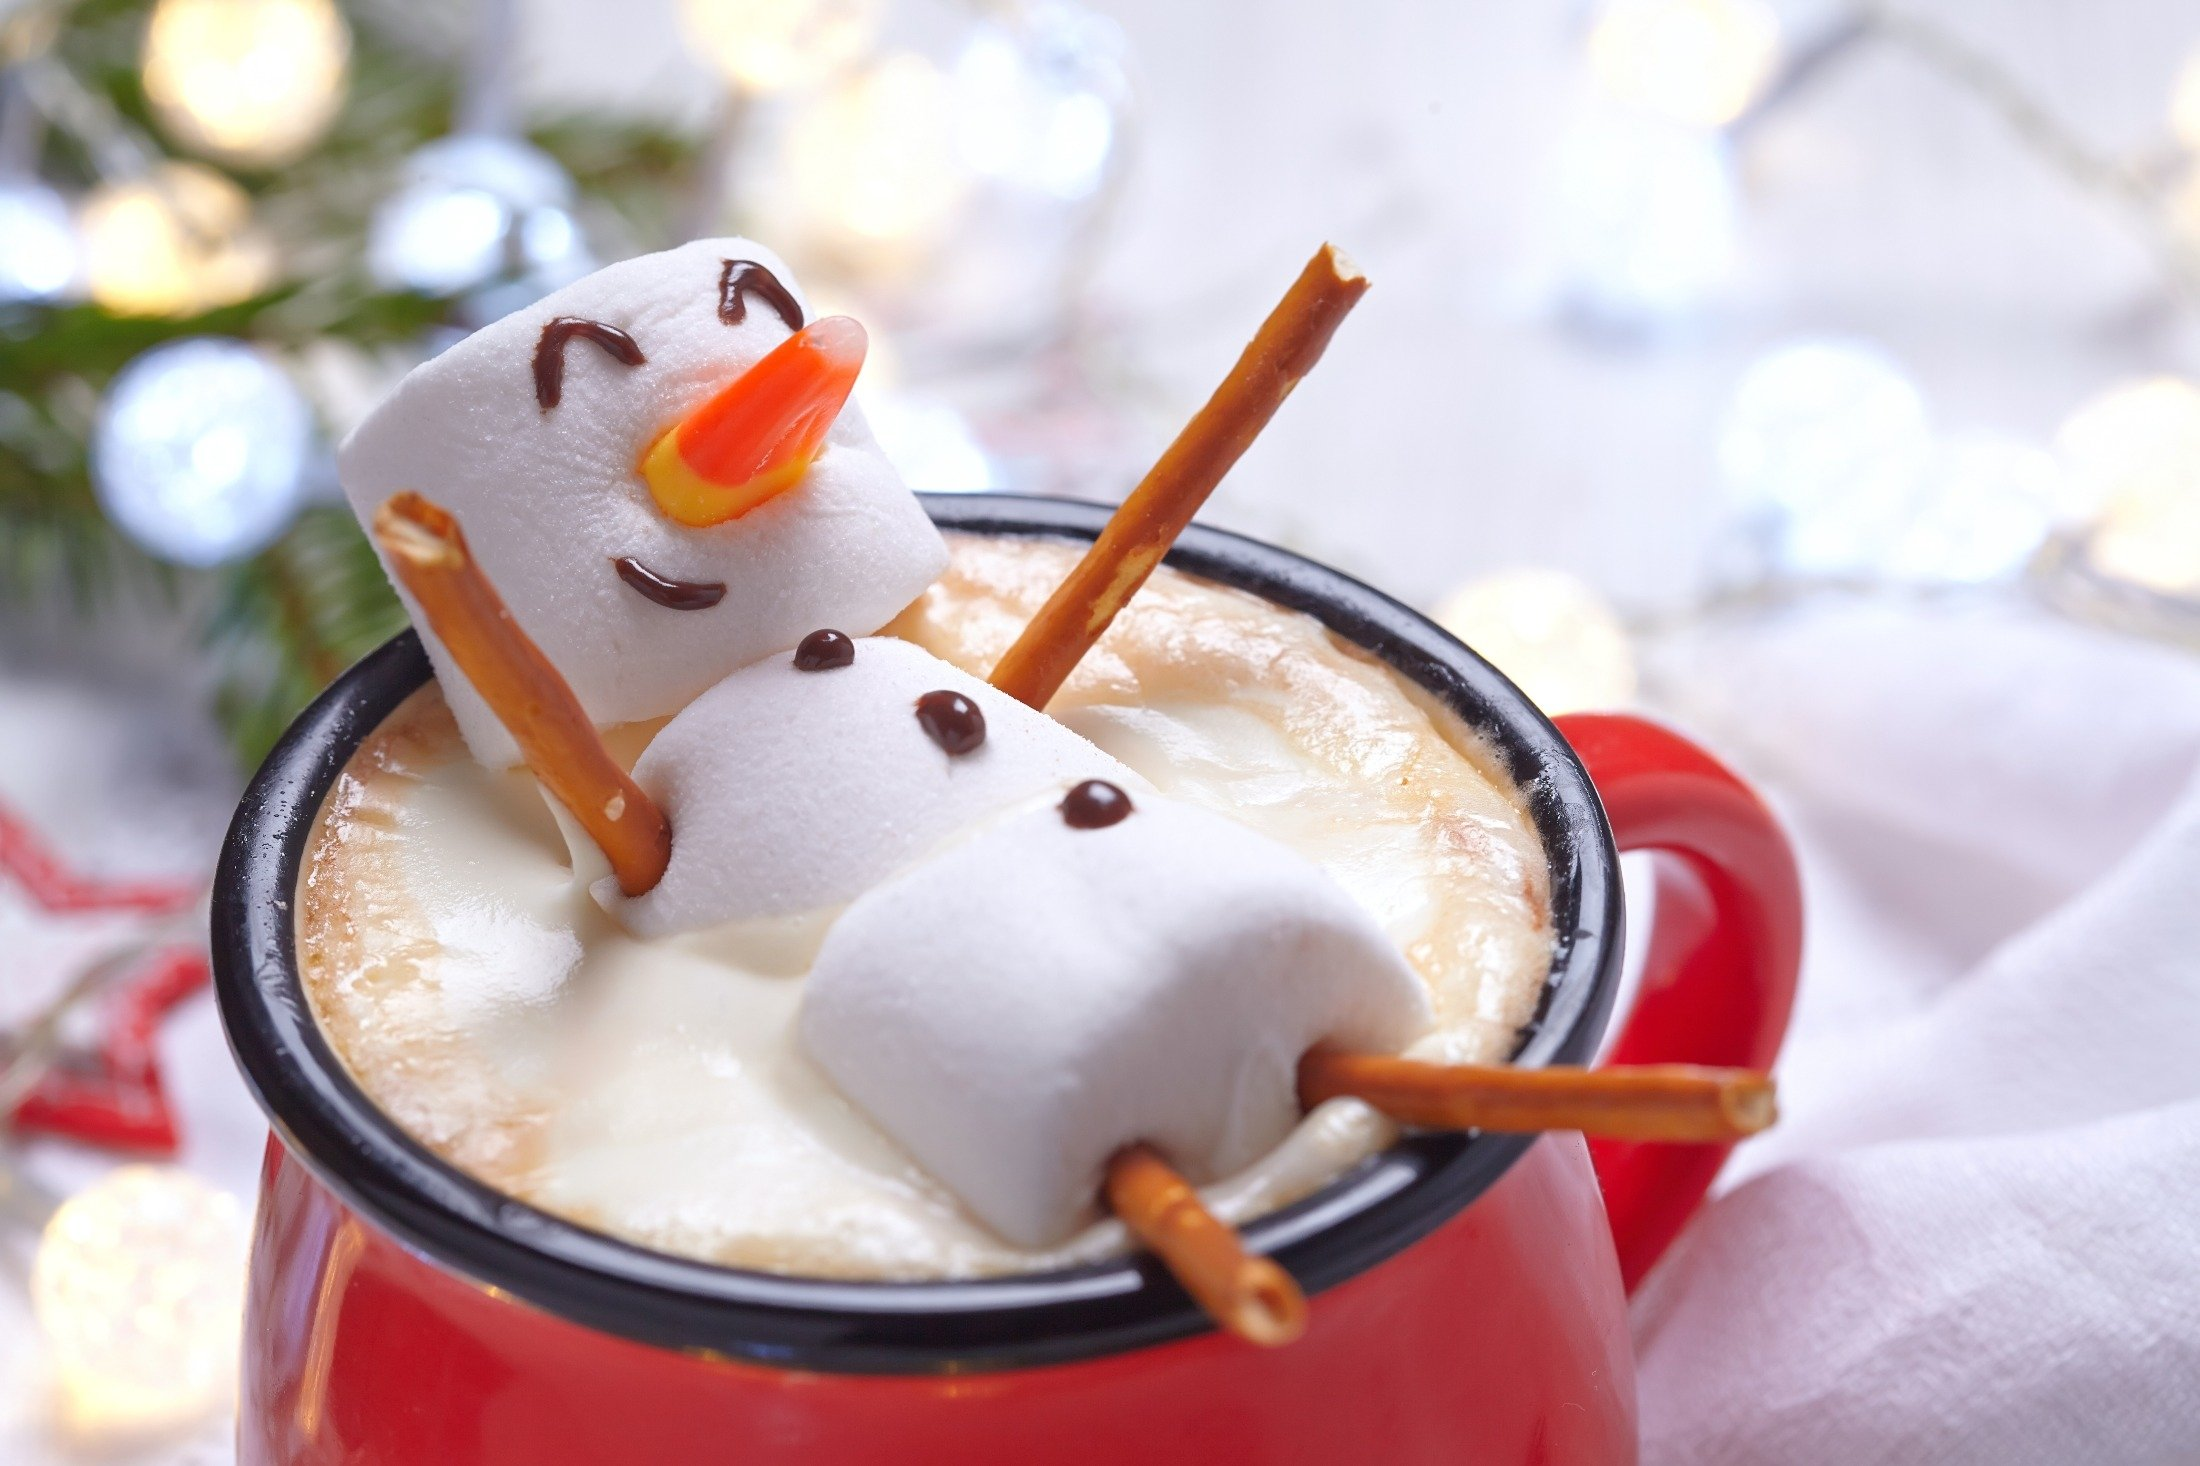 A melting marshmallow snowman rests atop hot chocolate in a red cup. (Shutterstock Photo)